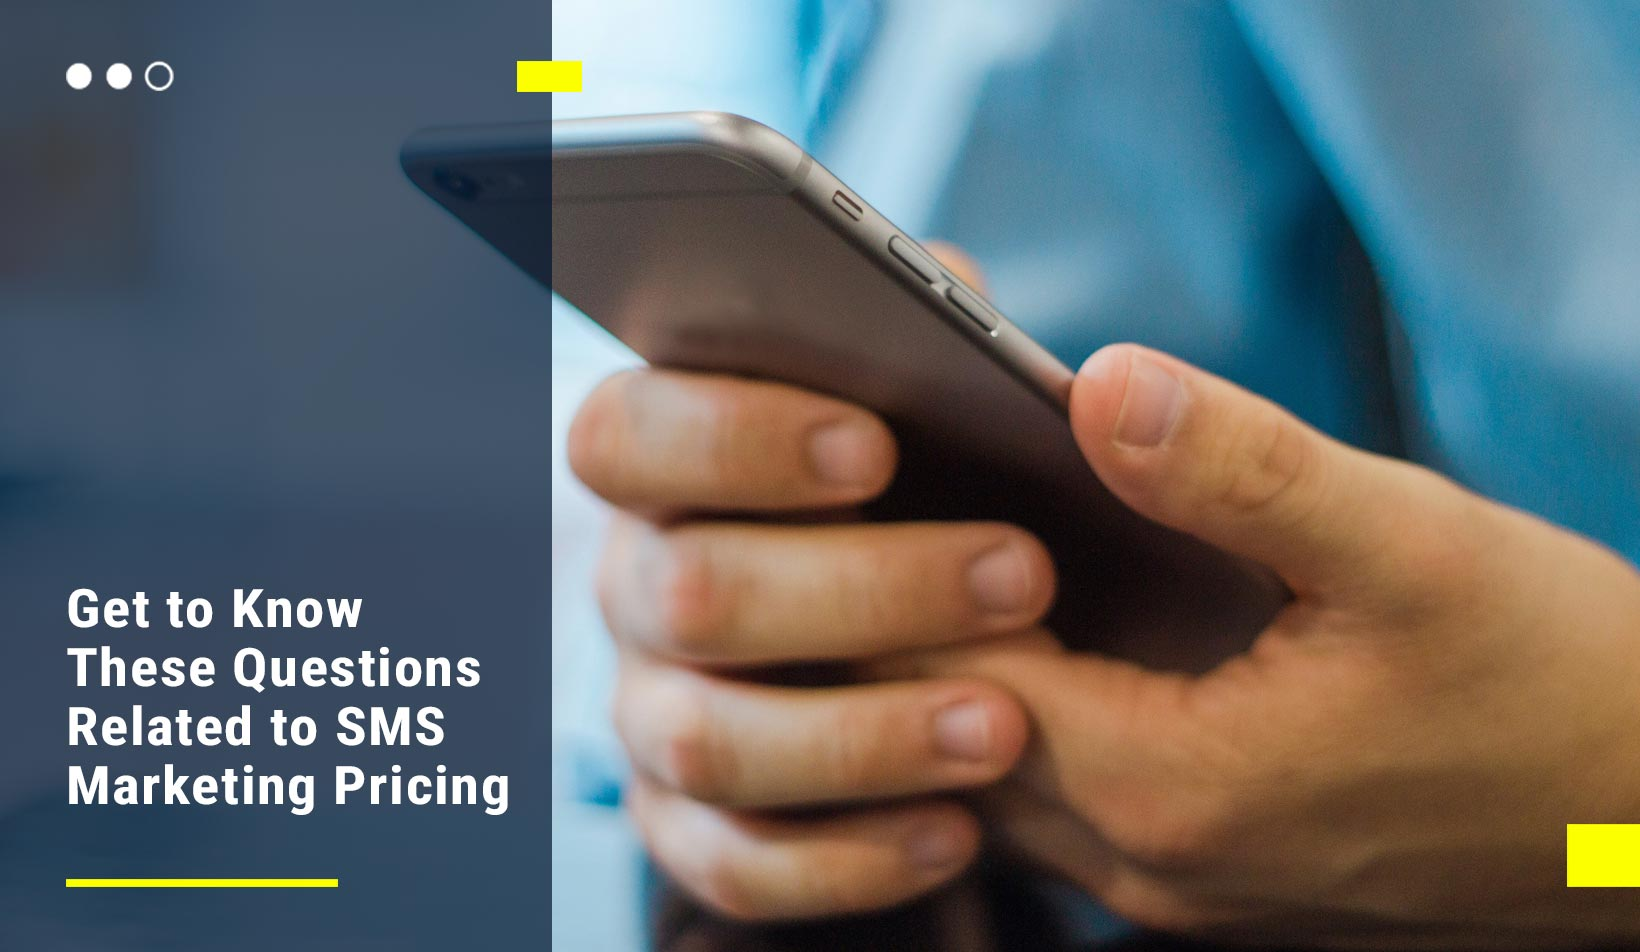 SMS Marketing Pricing